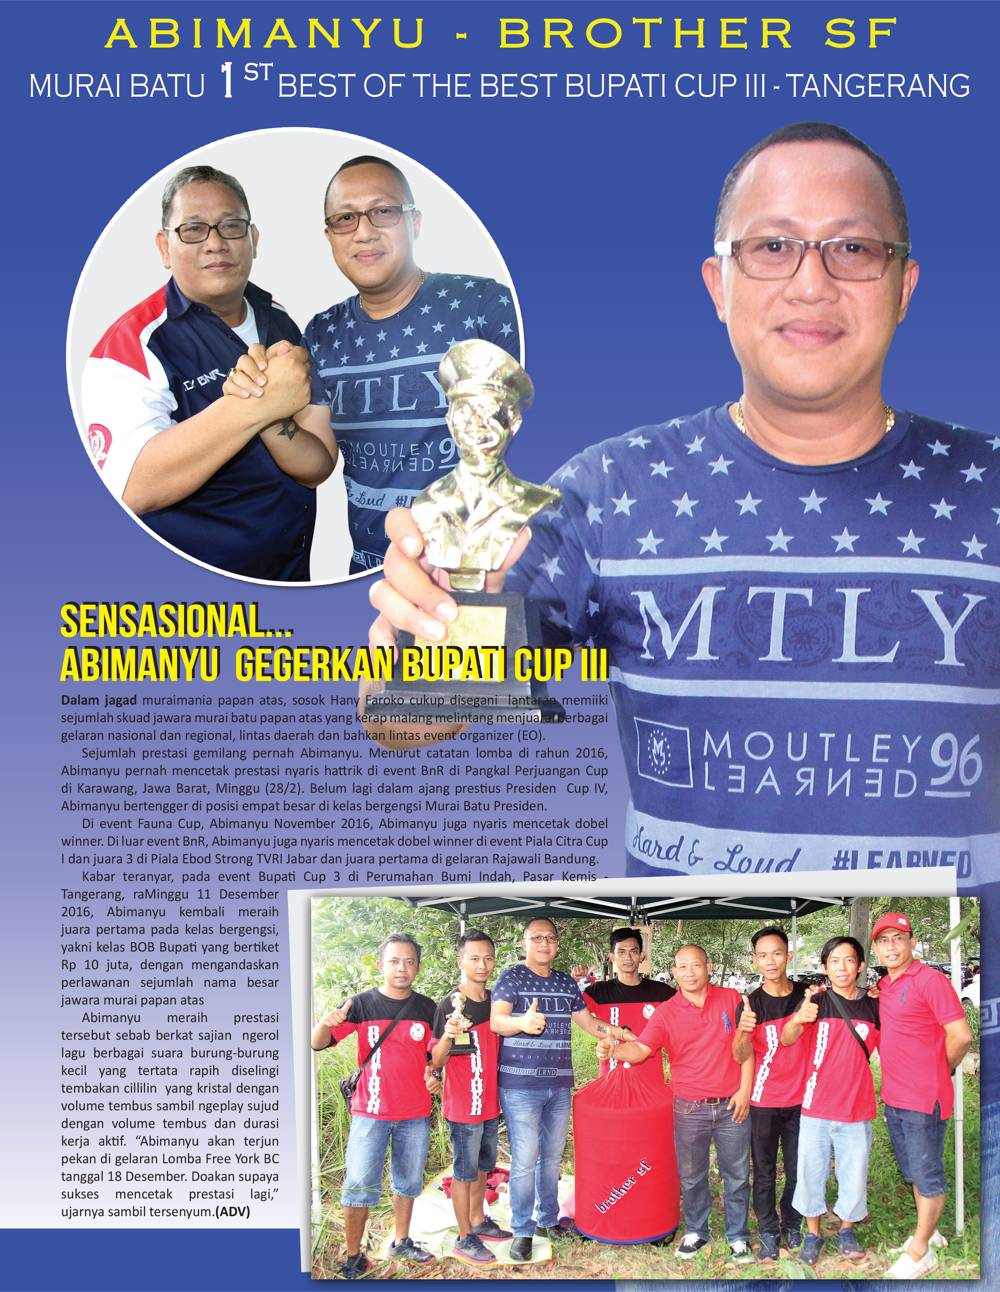 Abimanyu – Brother SF, Best Of The Best Bupati Cup 3 – Tangerang